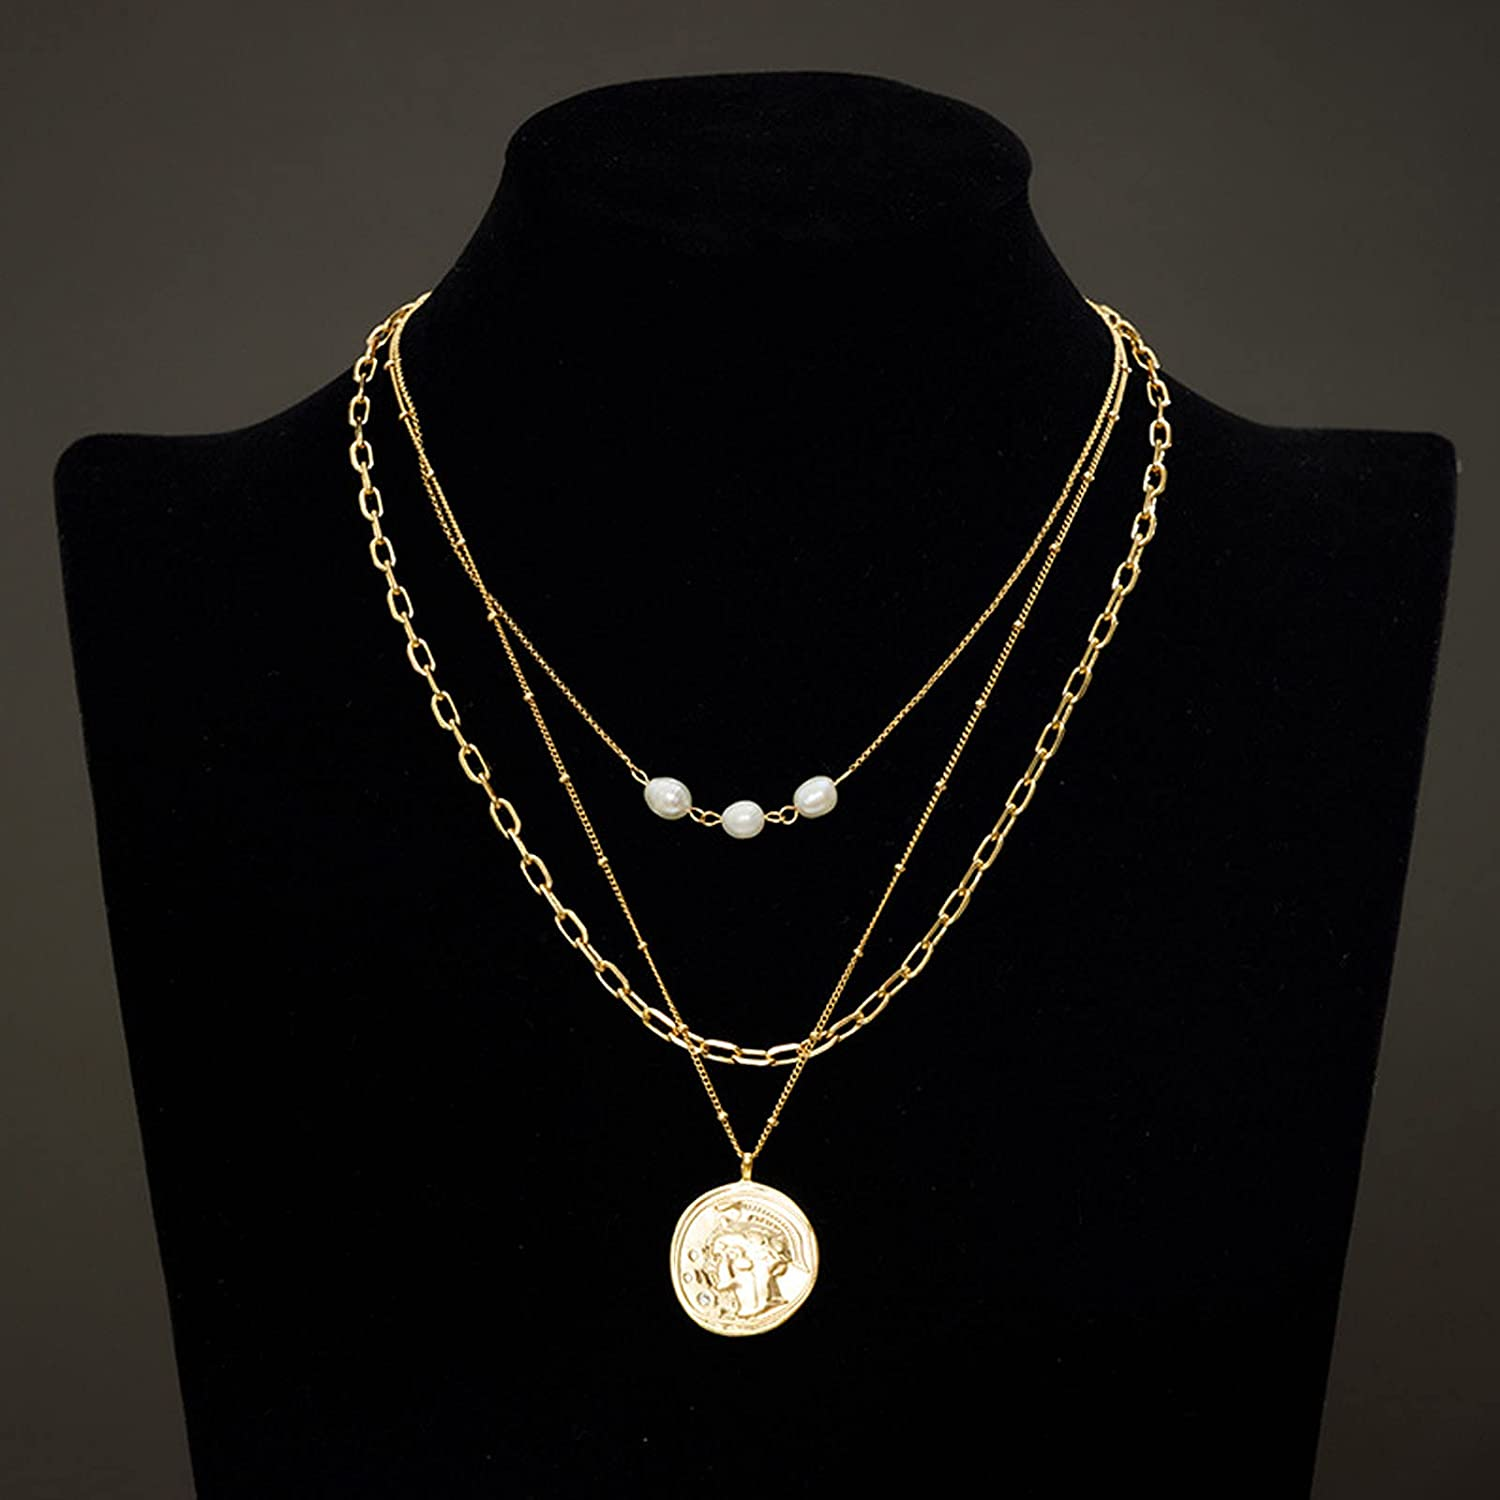 WANZPITS Fashion Multilayer Roman Head Coin Pendant Necklace Retro Exquisite Layered Collar Necklace Clavicle Chain Ladies Jewelry Gift,Gold